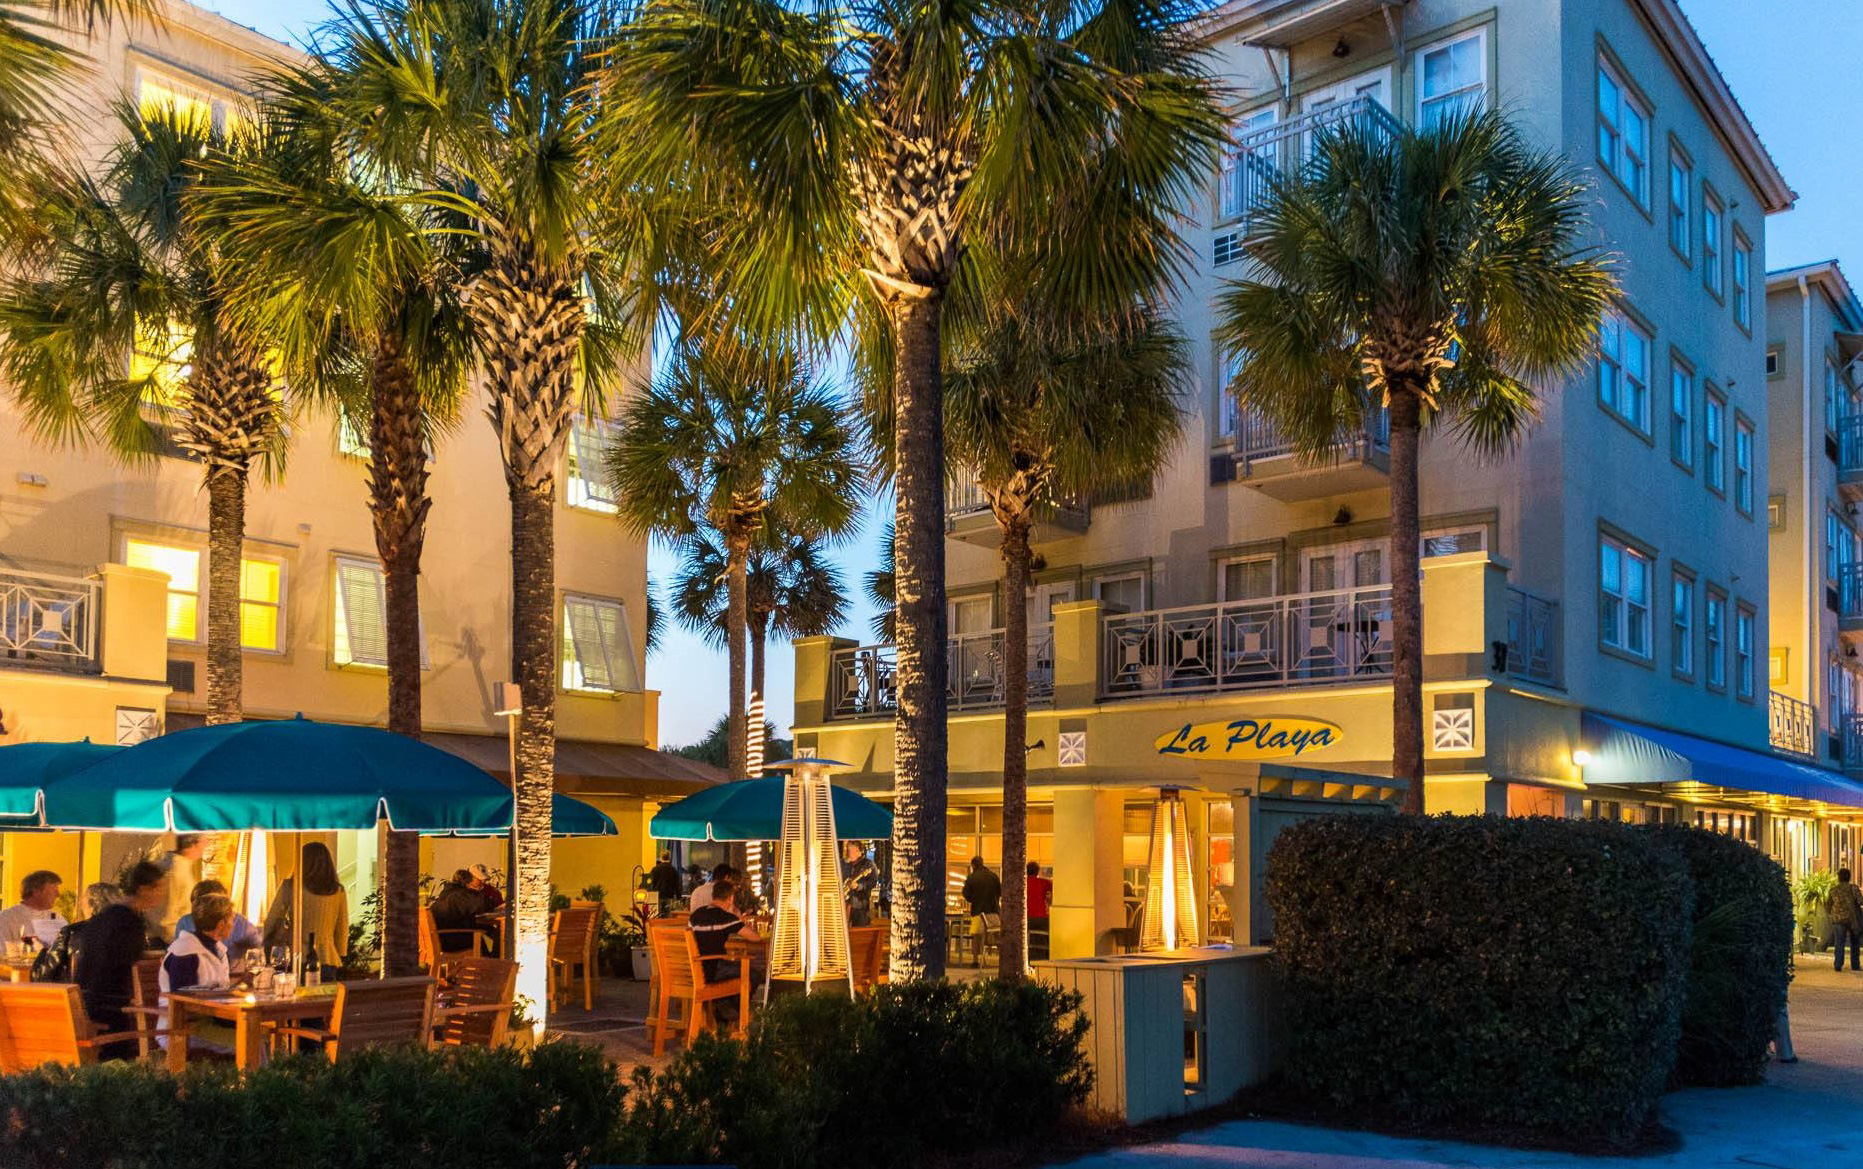 Nightlife   Enjoy dining and live music at LaPlaya, The Perfect Pig and more!